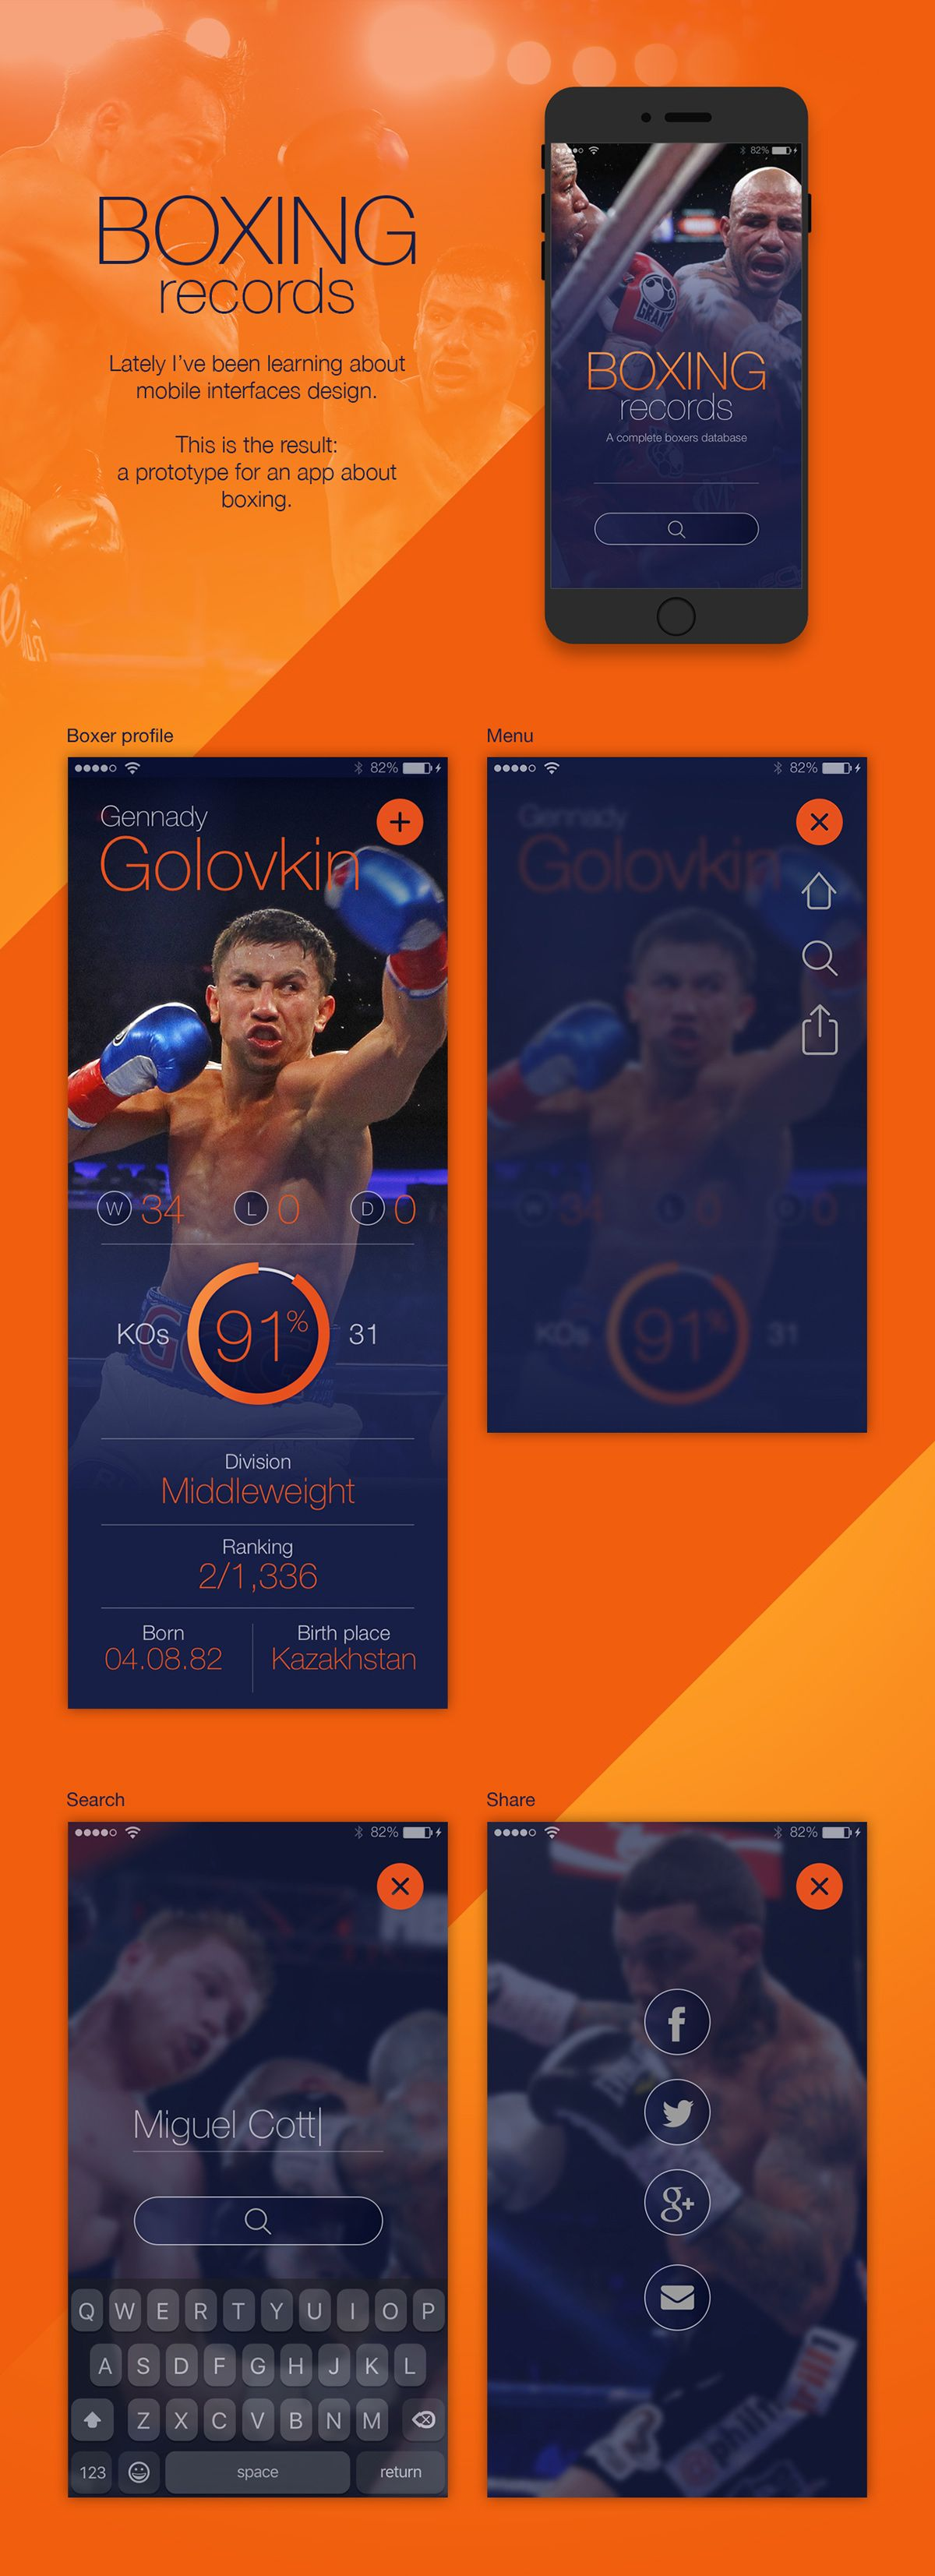 Boxing app on Behance App, Boxing records, Mobile interface